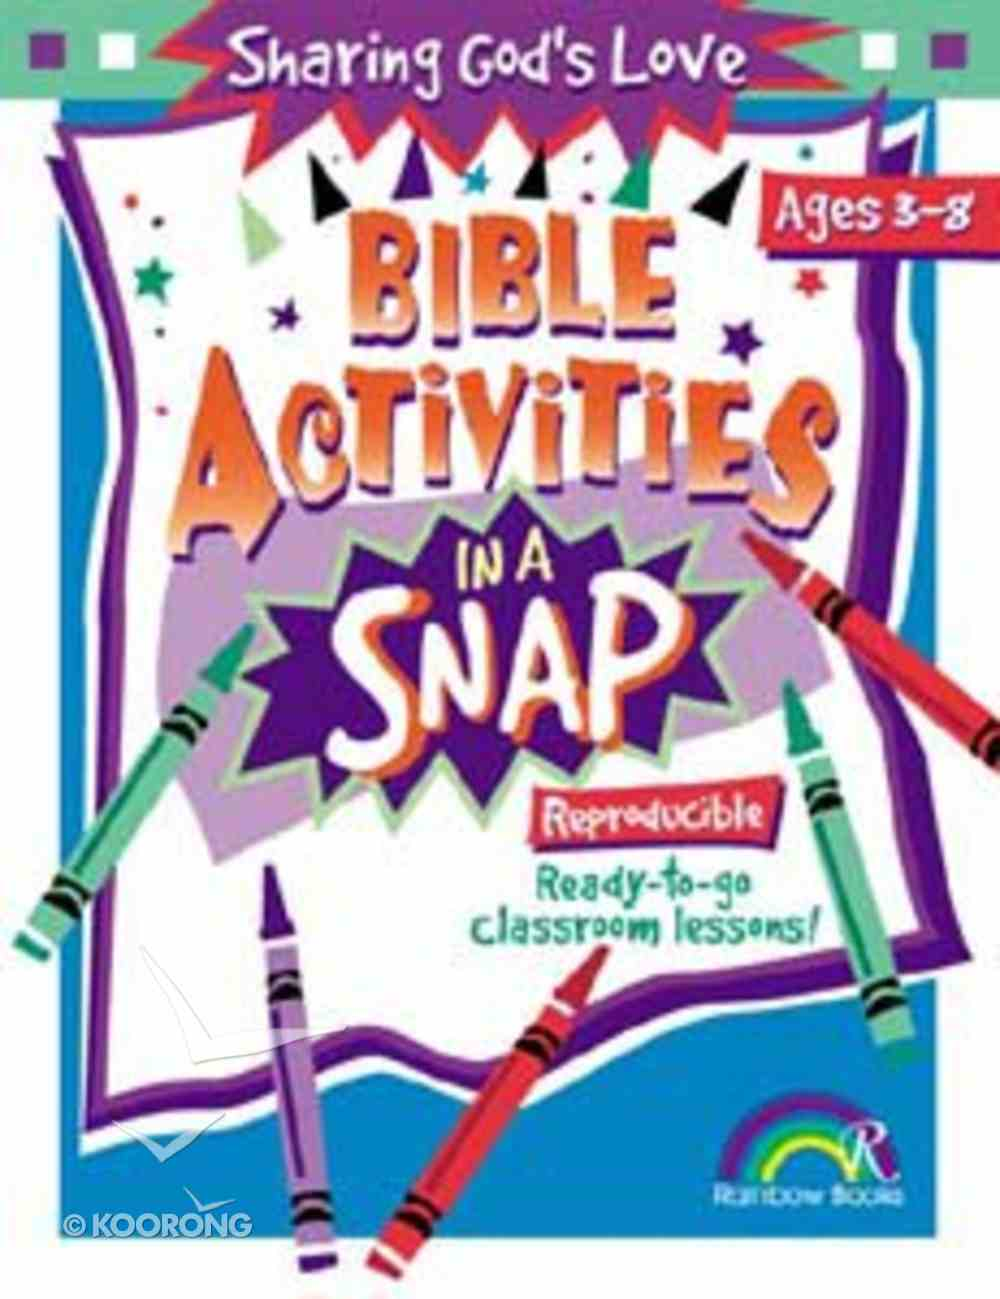 Sharing God's Love (Reproducible) (Bible Activities In A Snap Series) Paperback